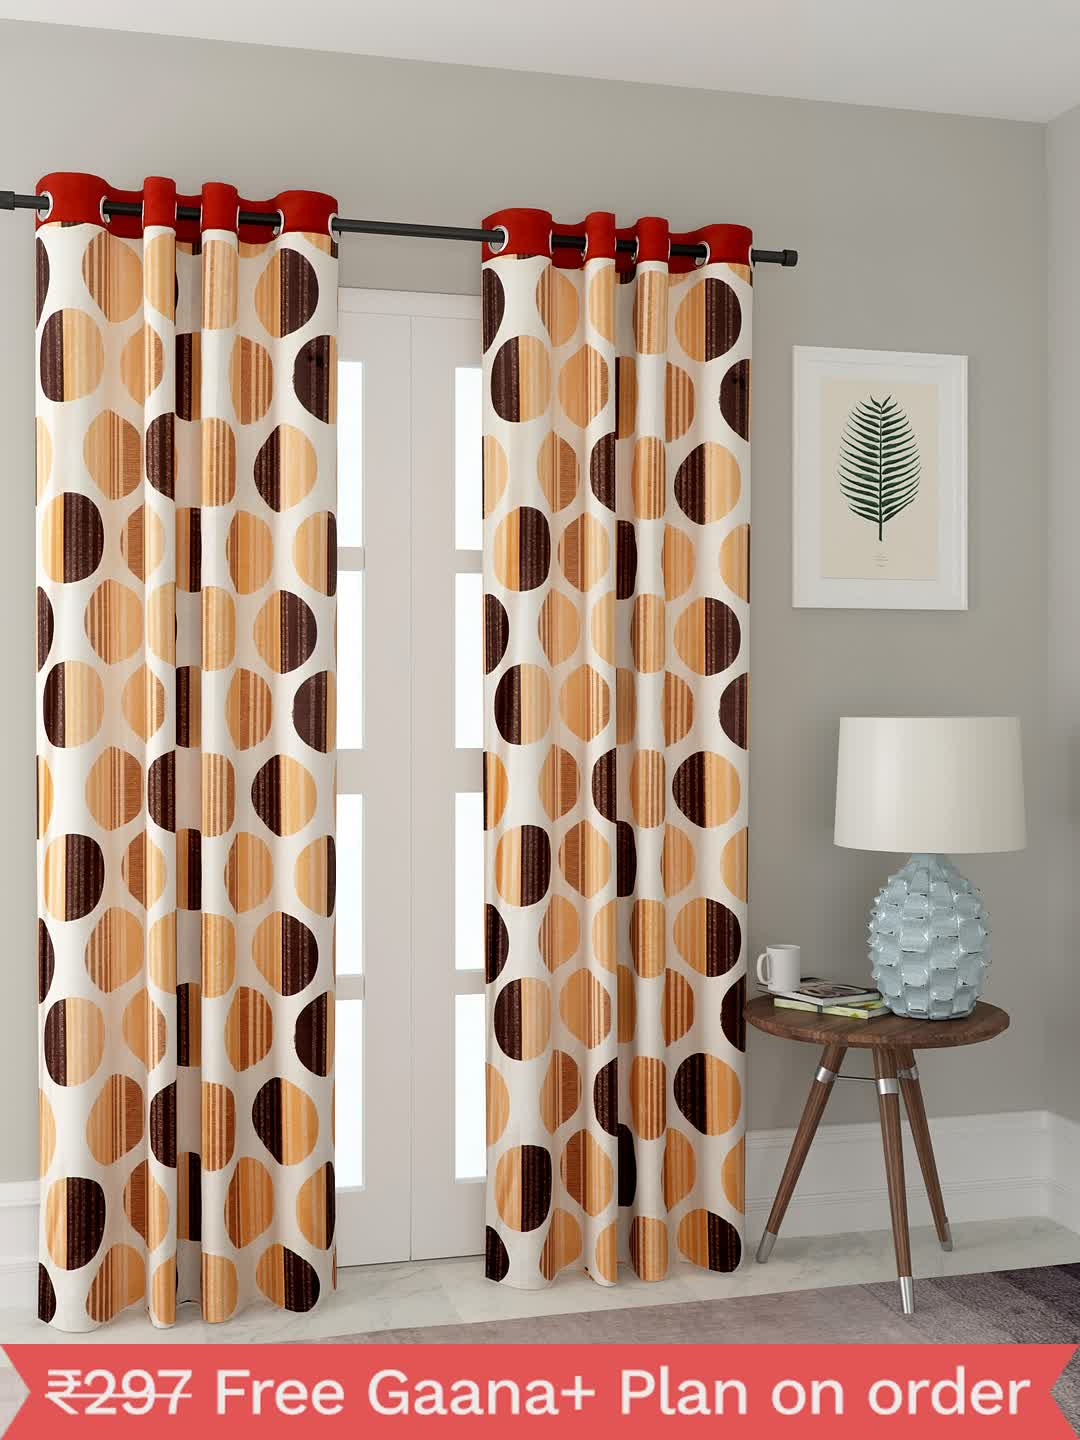 Polyester Printed Window Curtains for Bedroom, Kitchen, Kids or Living Room-018_Set of 2 - 1, Large